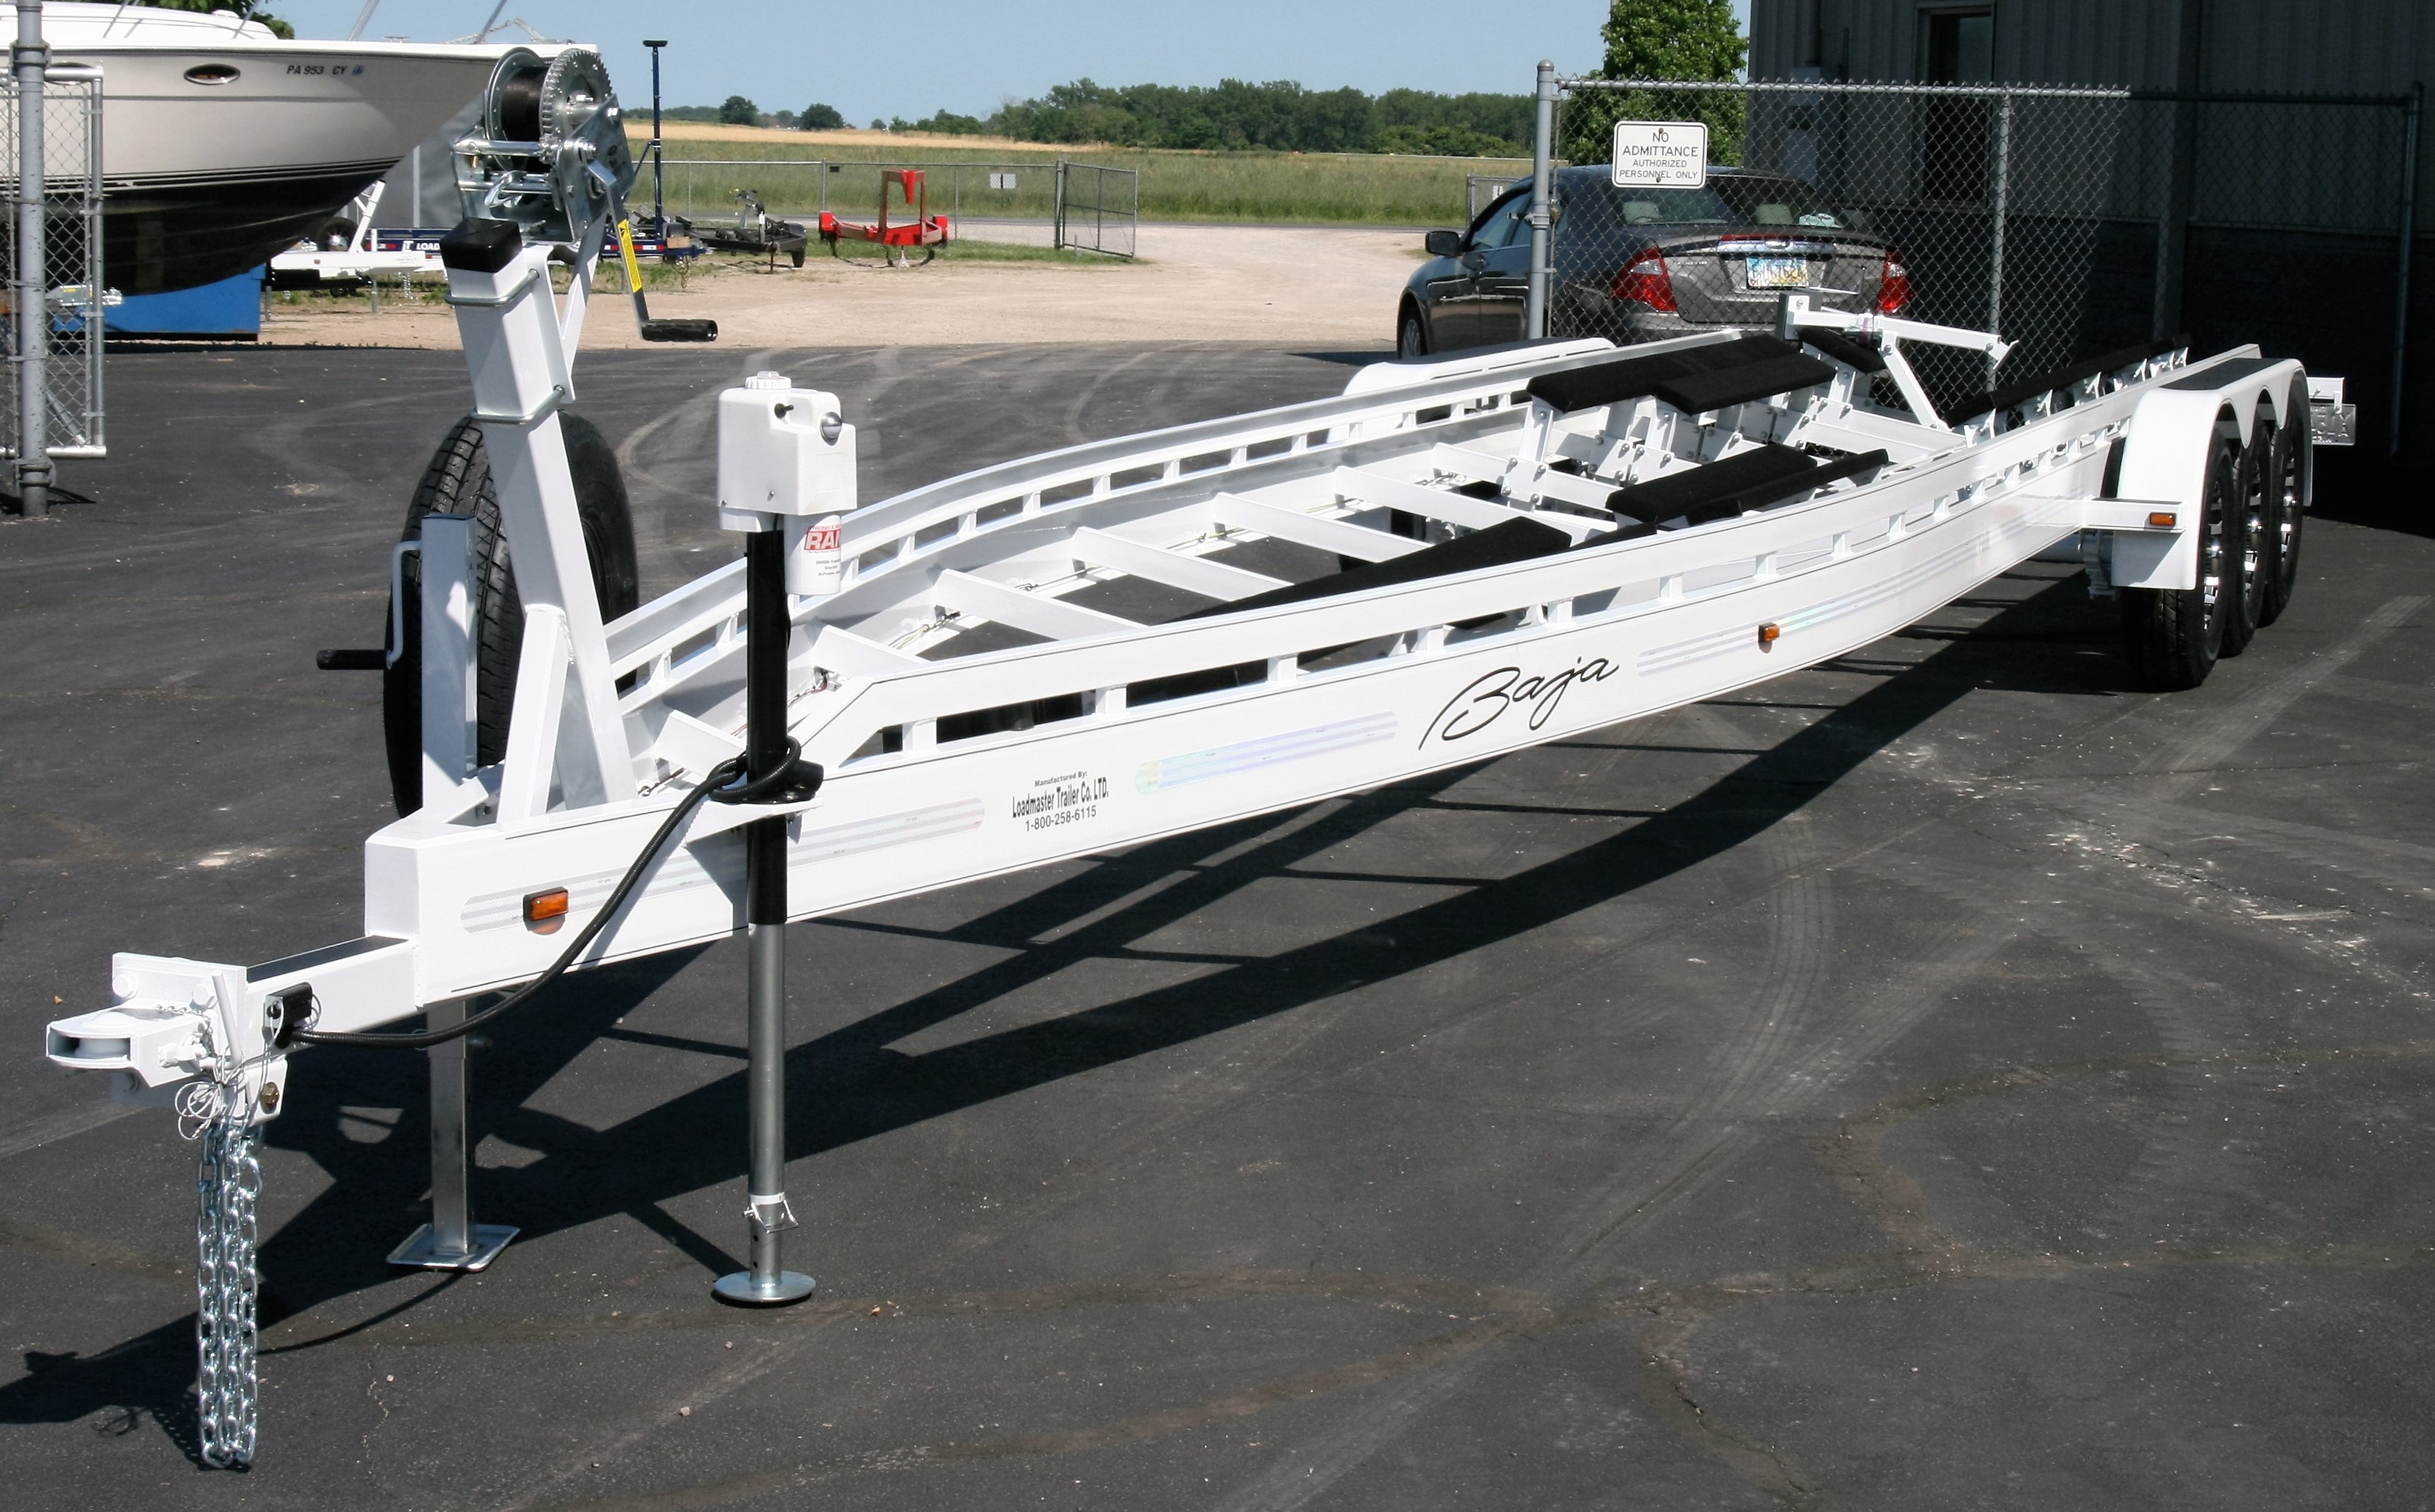 boat trailer how to diagram a complex sentence powerboat trailers